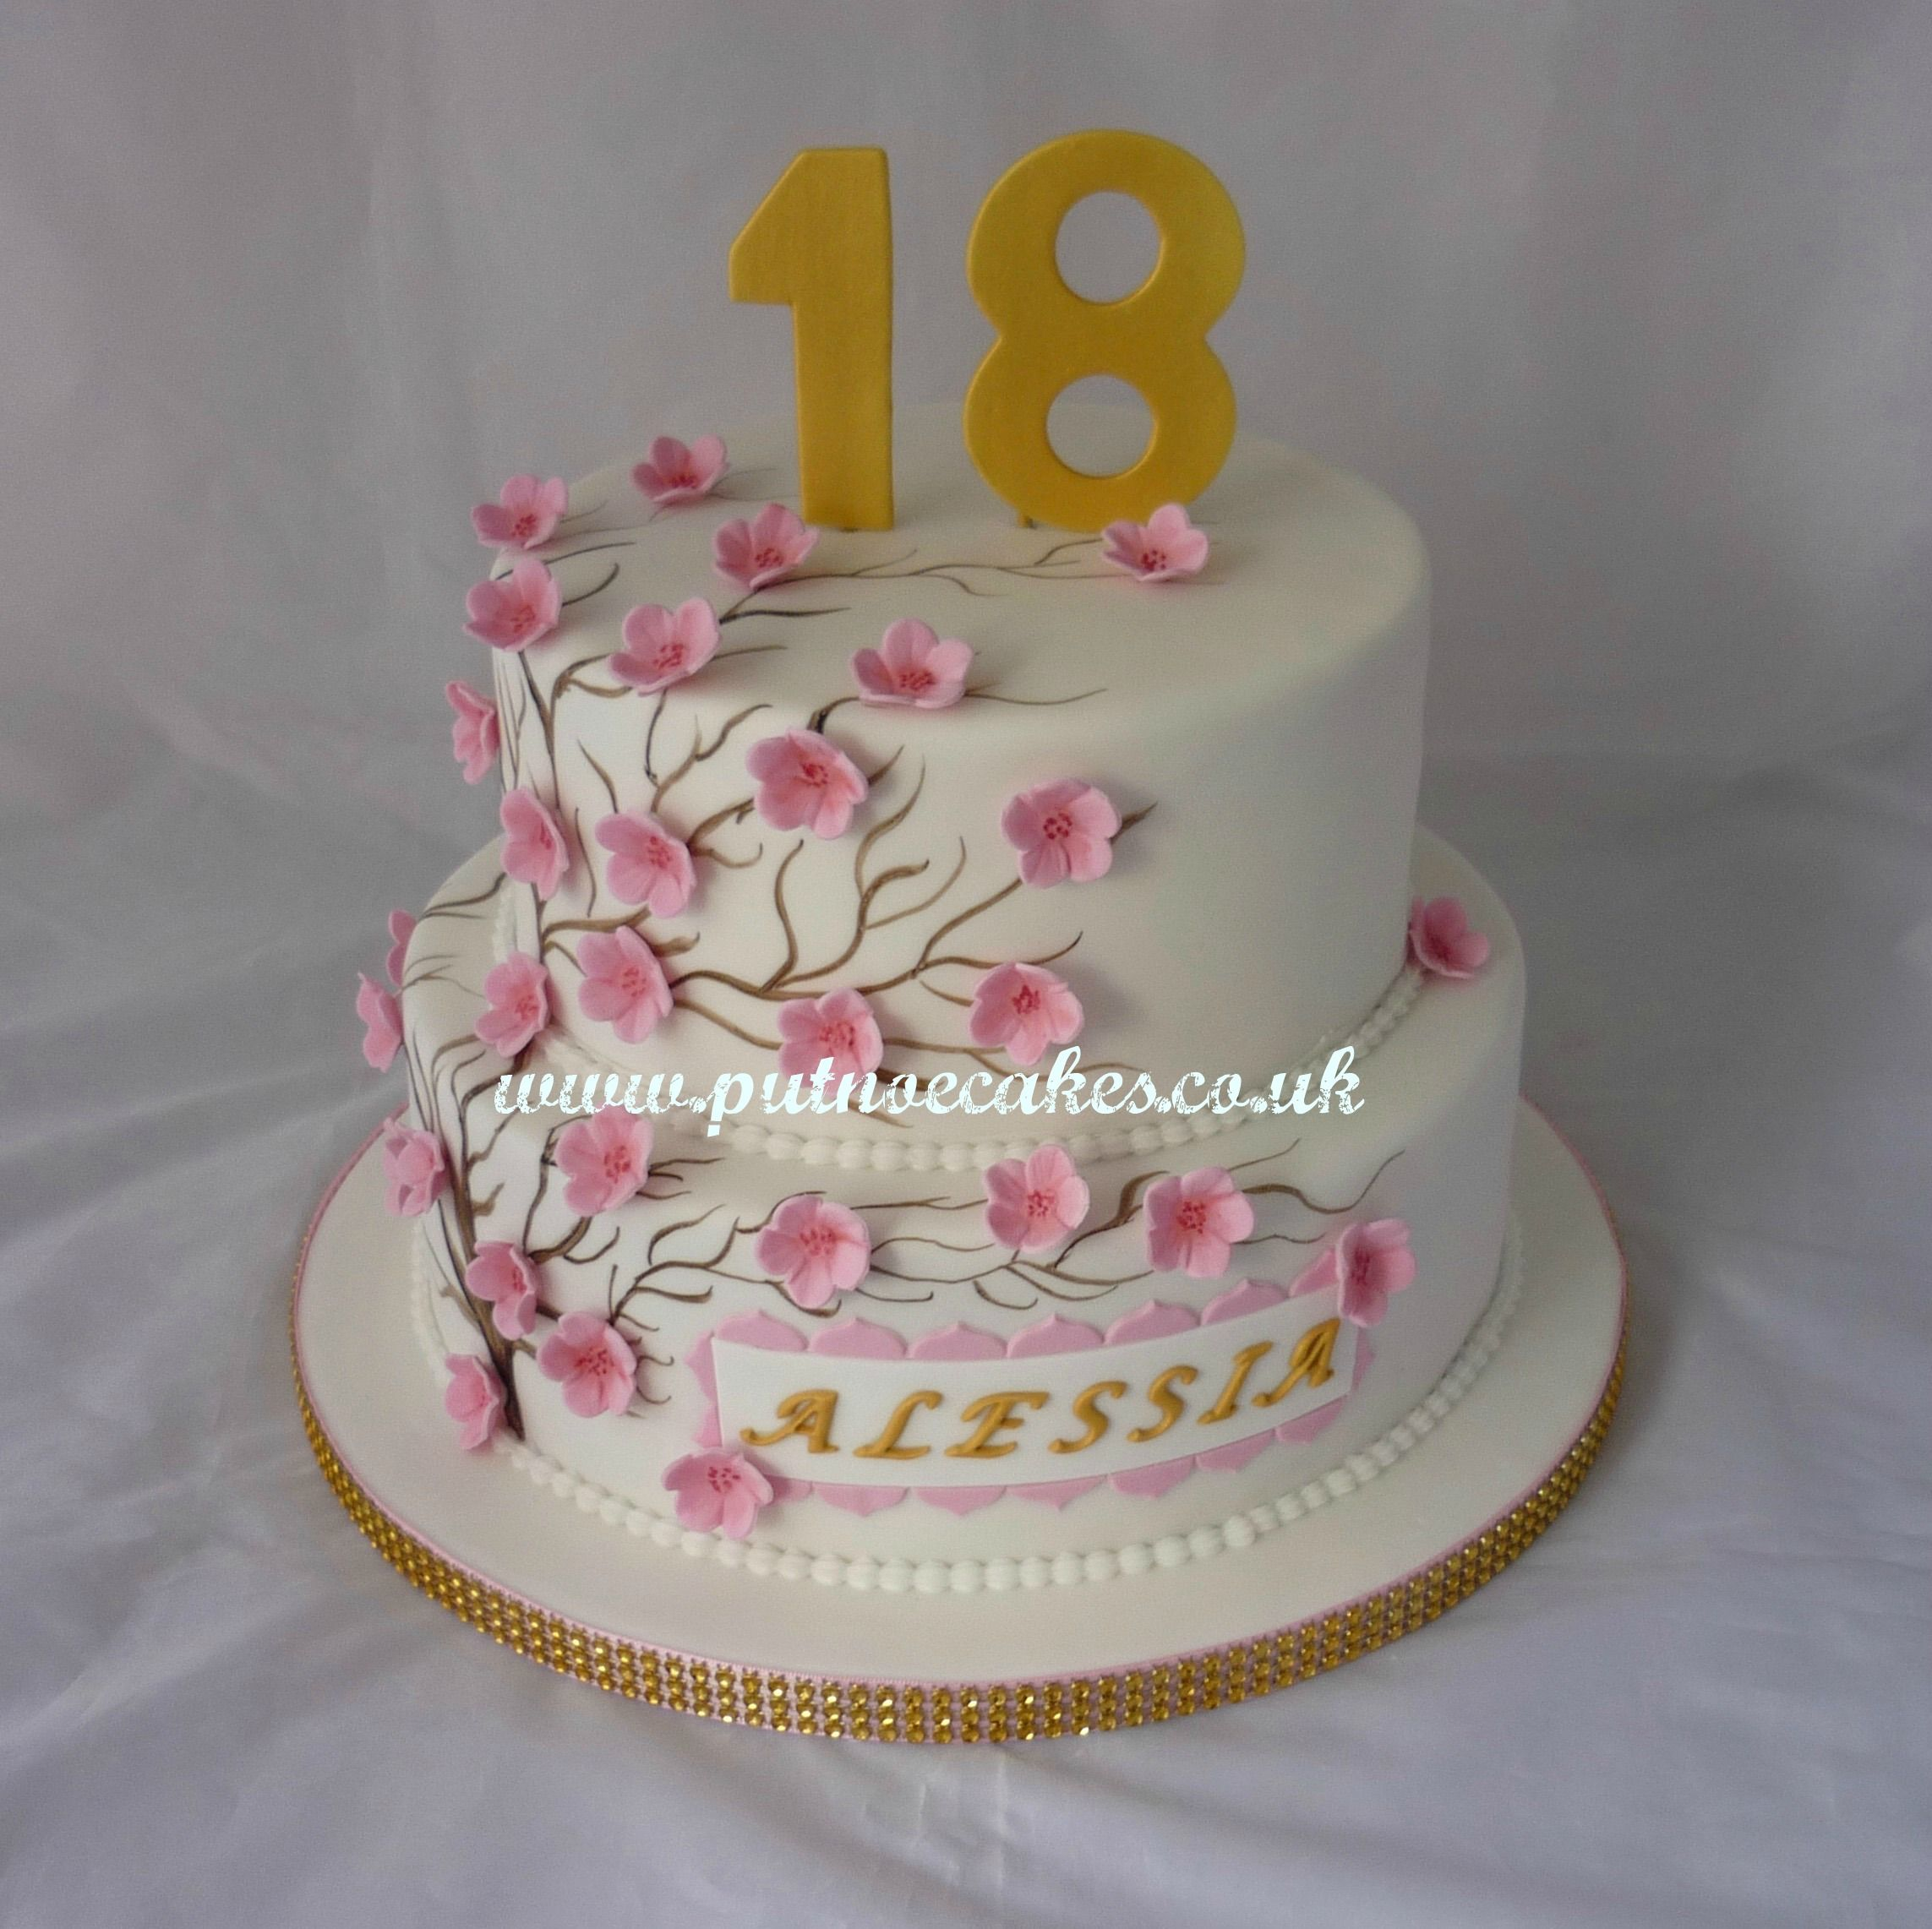 2 Tier Cherry Blossom 18th Birthday Cake Food In 2018 Pinterest